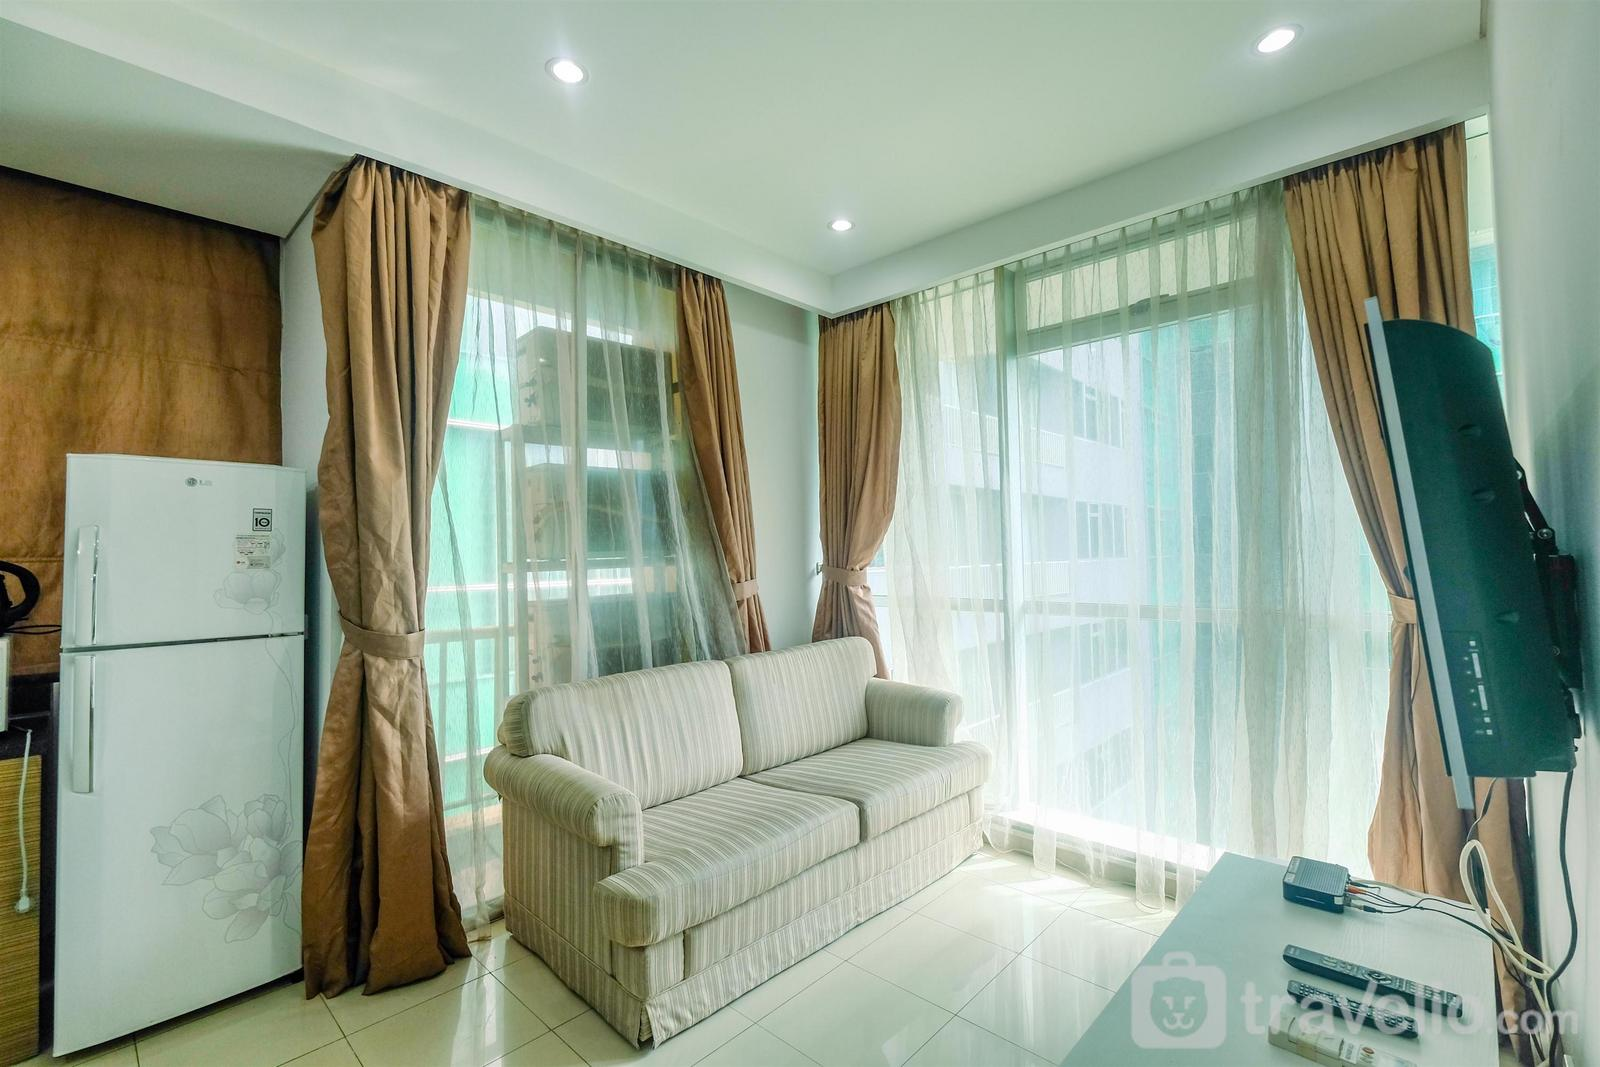 Kuningan Place Apartment - 2BR Apartment with Study Room @ Kuningan Place Apartment By Travelio